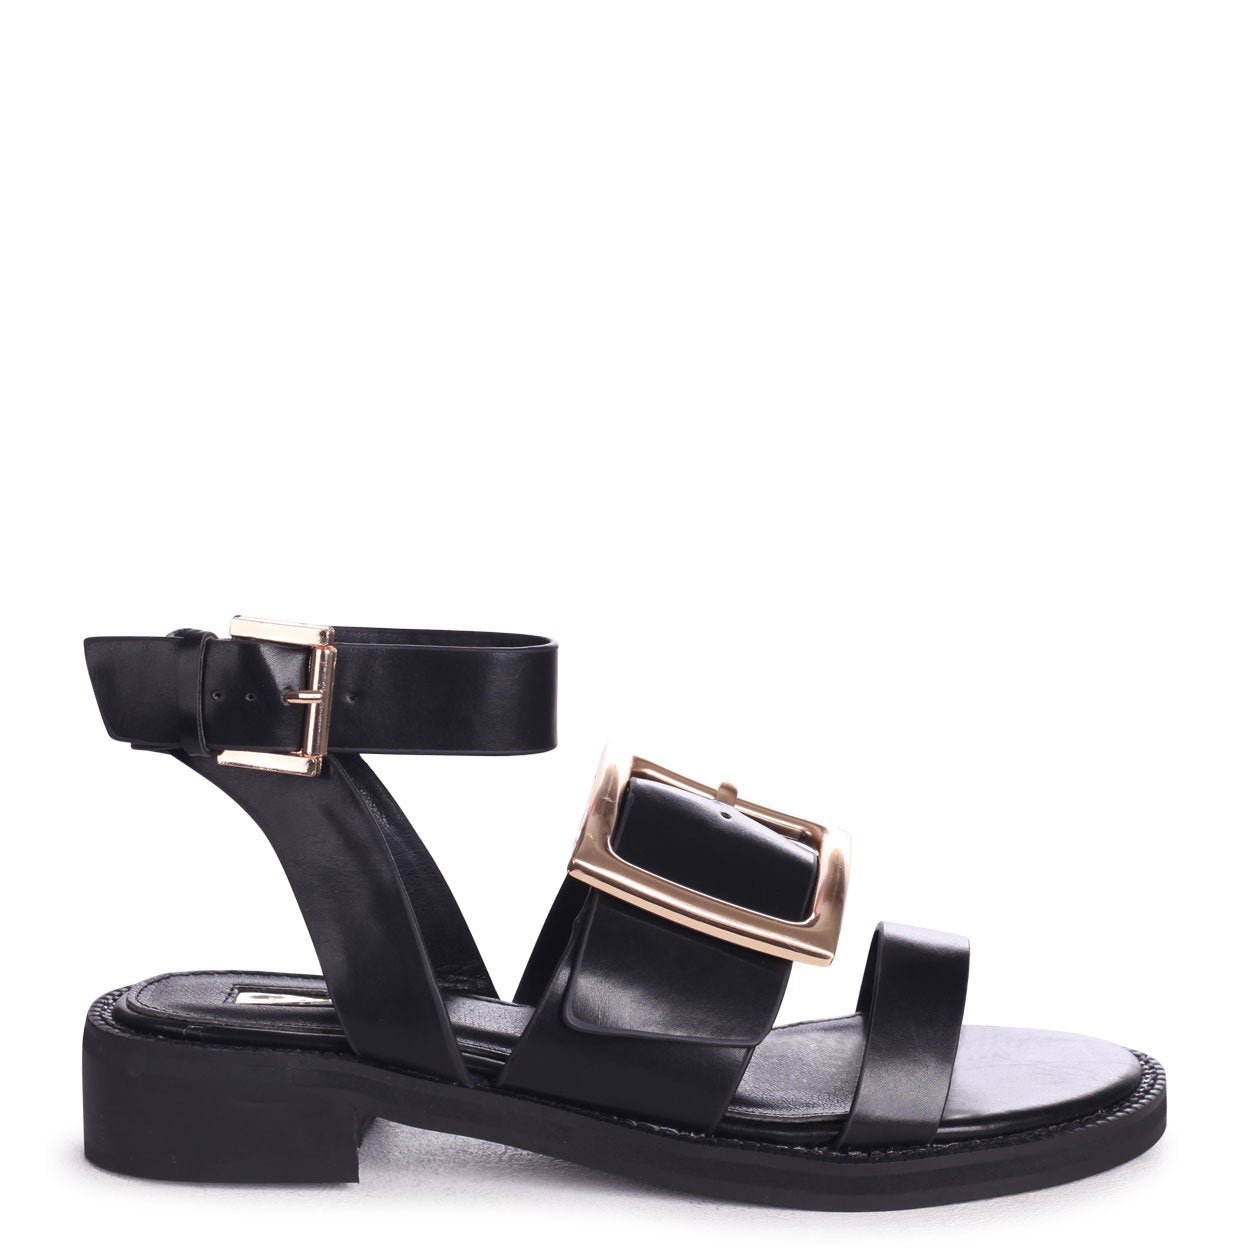 TRIUMPH - Black Nappa Two Part Sandal With Giant Buckle Detail